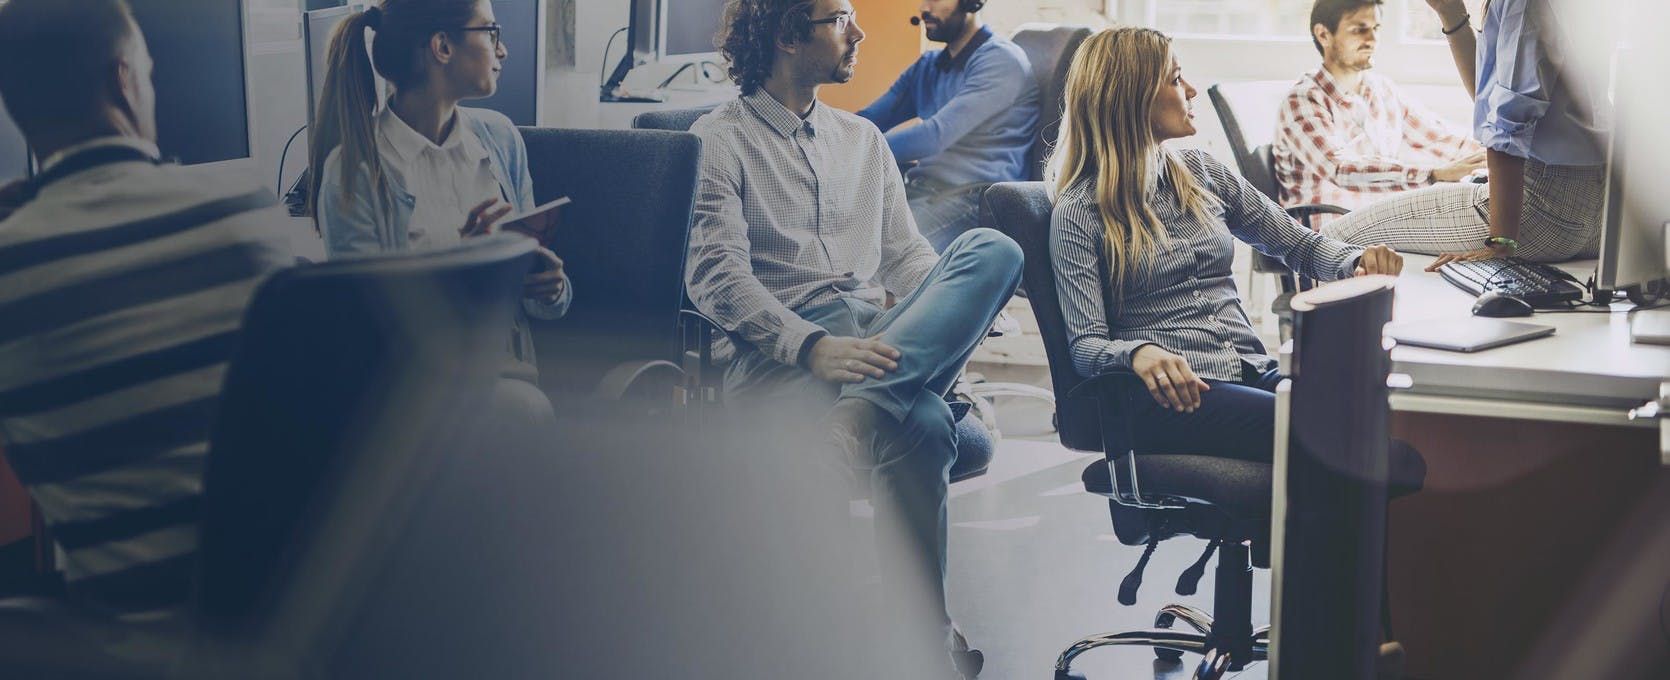 people sitting in desk chairs having a meeting